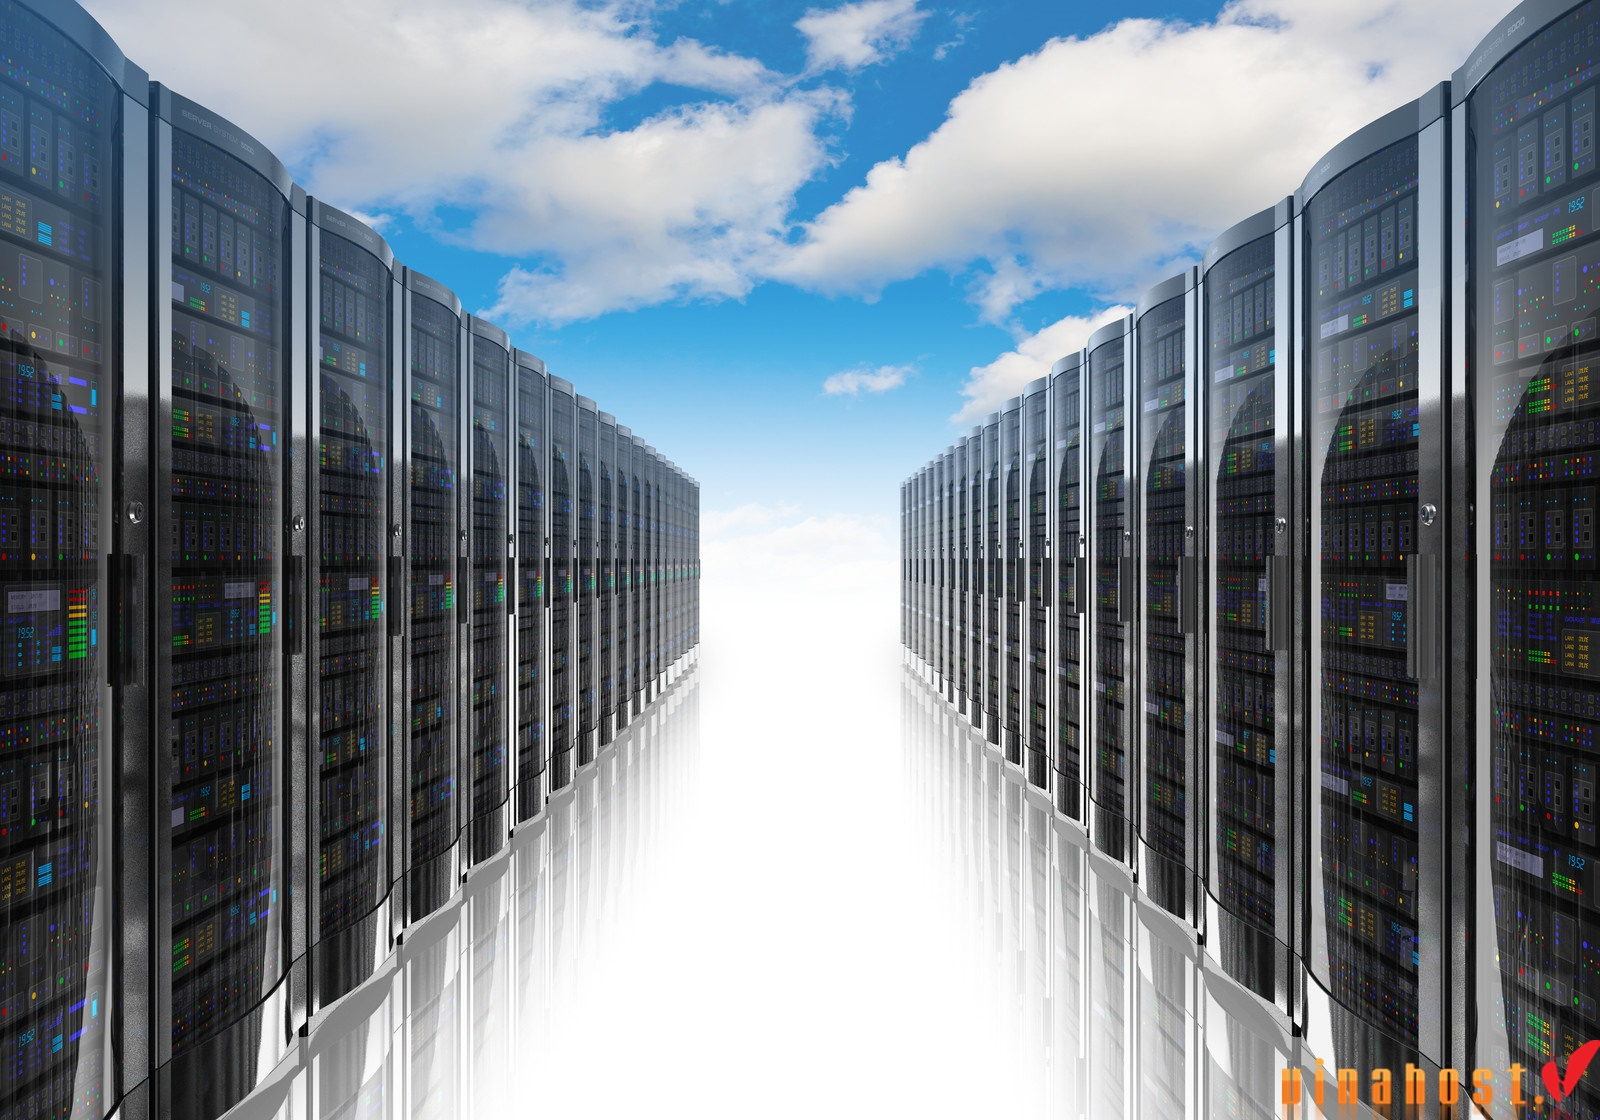 vinahost-How-to-choose-between-China-cloud-servers-and-colocation-part-2-3